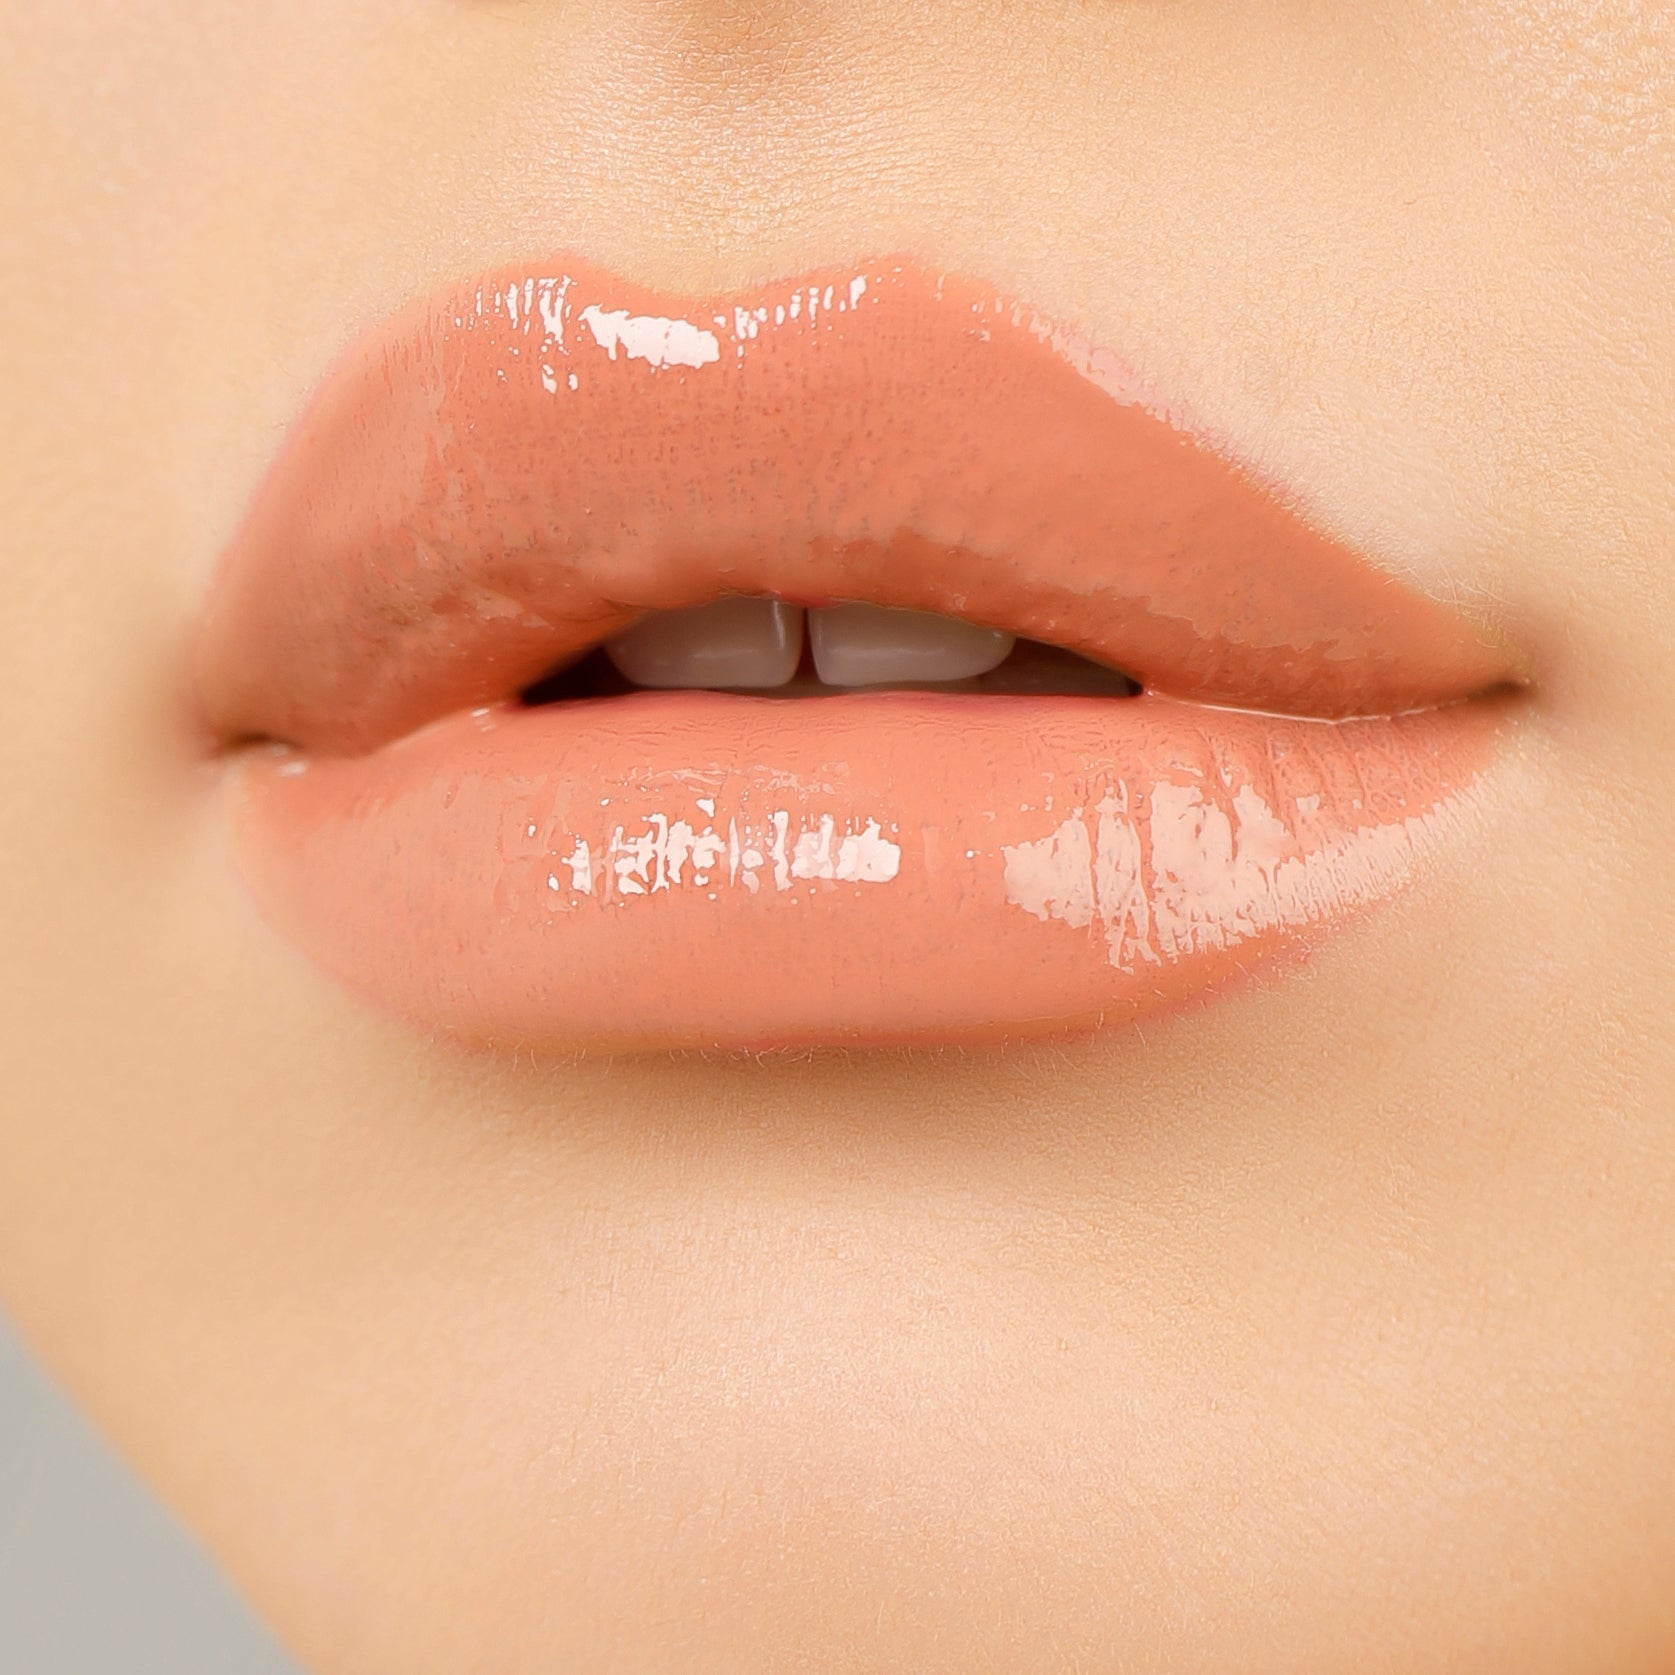 peachy keen on model's lips